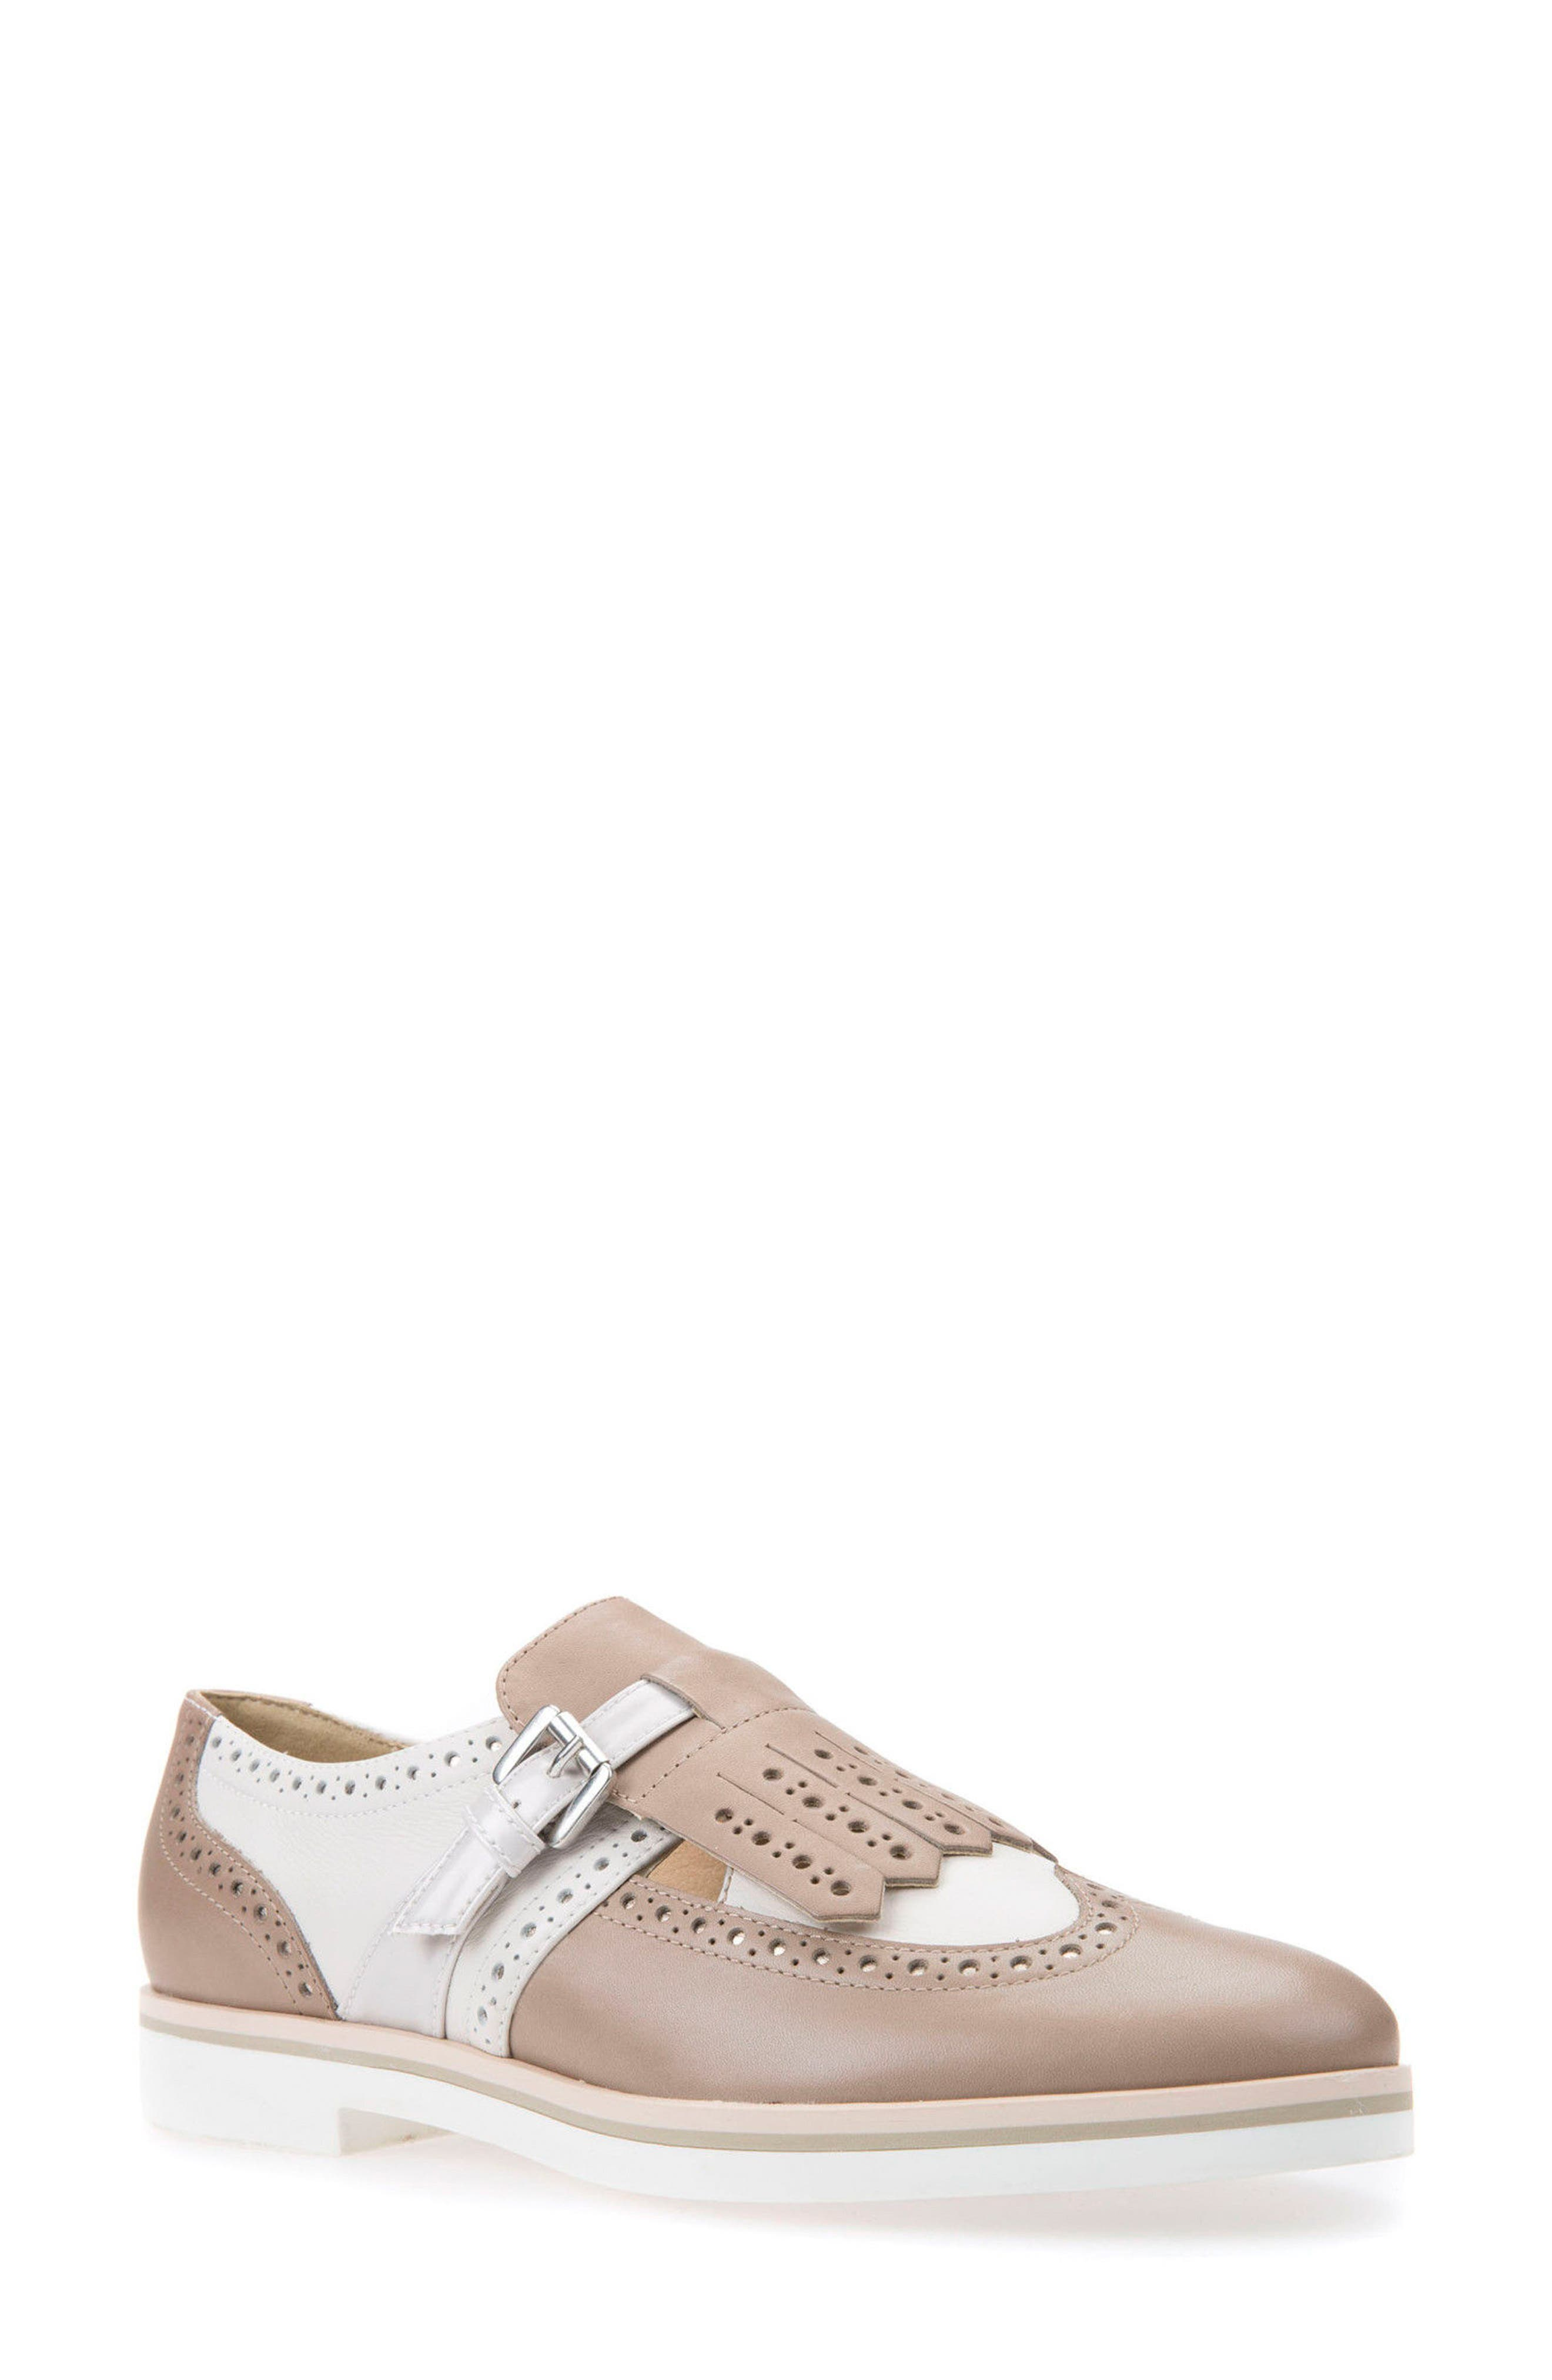 Janalee Cutout Loafer,                         Main,                         color, Sand Leather